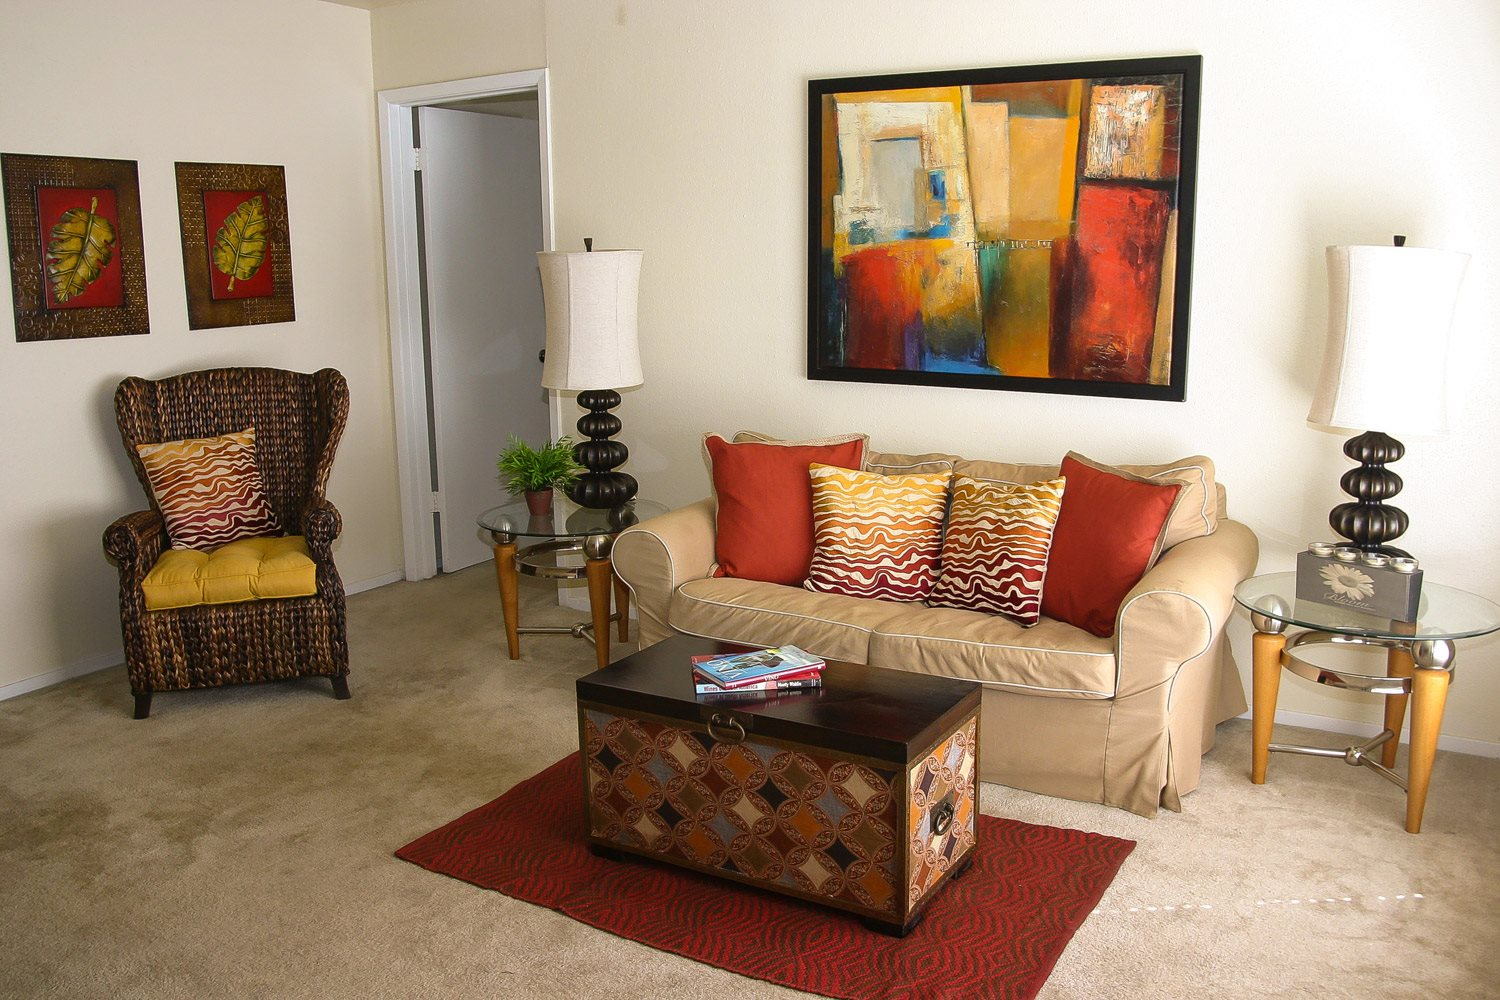 Apartment Interior Photo at Woodhollow Apartments in Huntsville , TX 77340